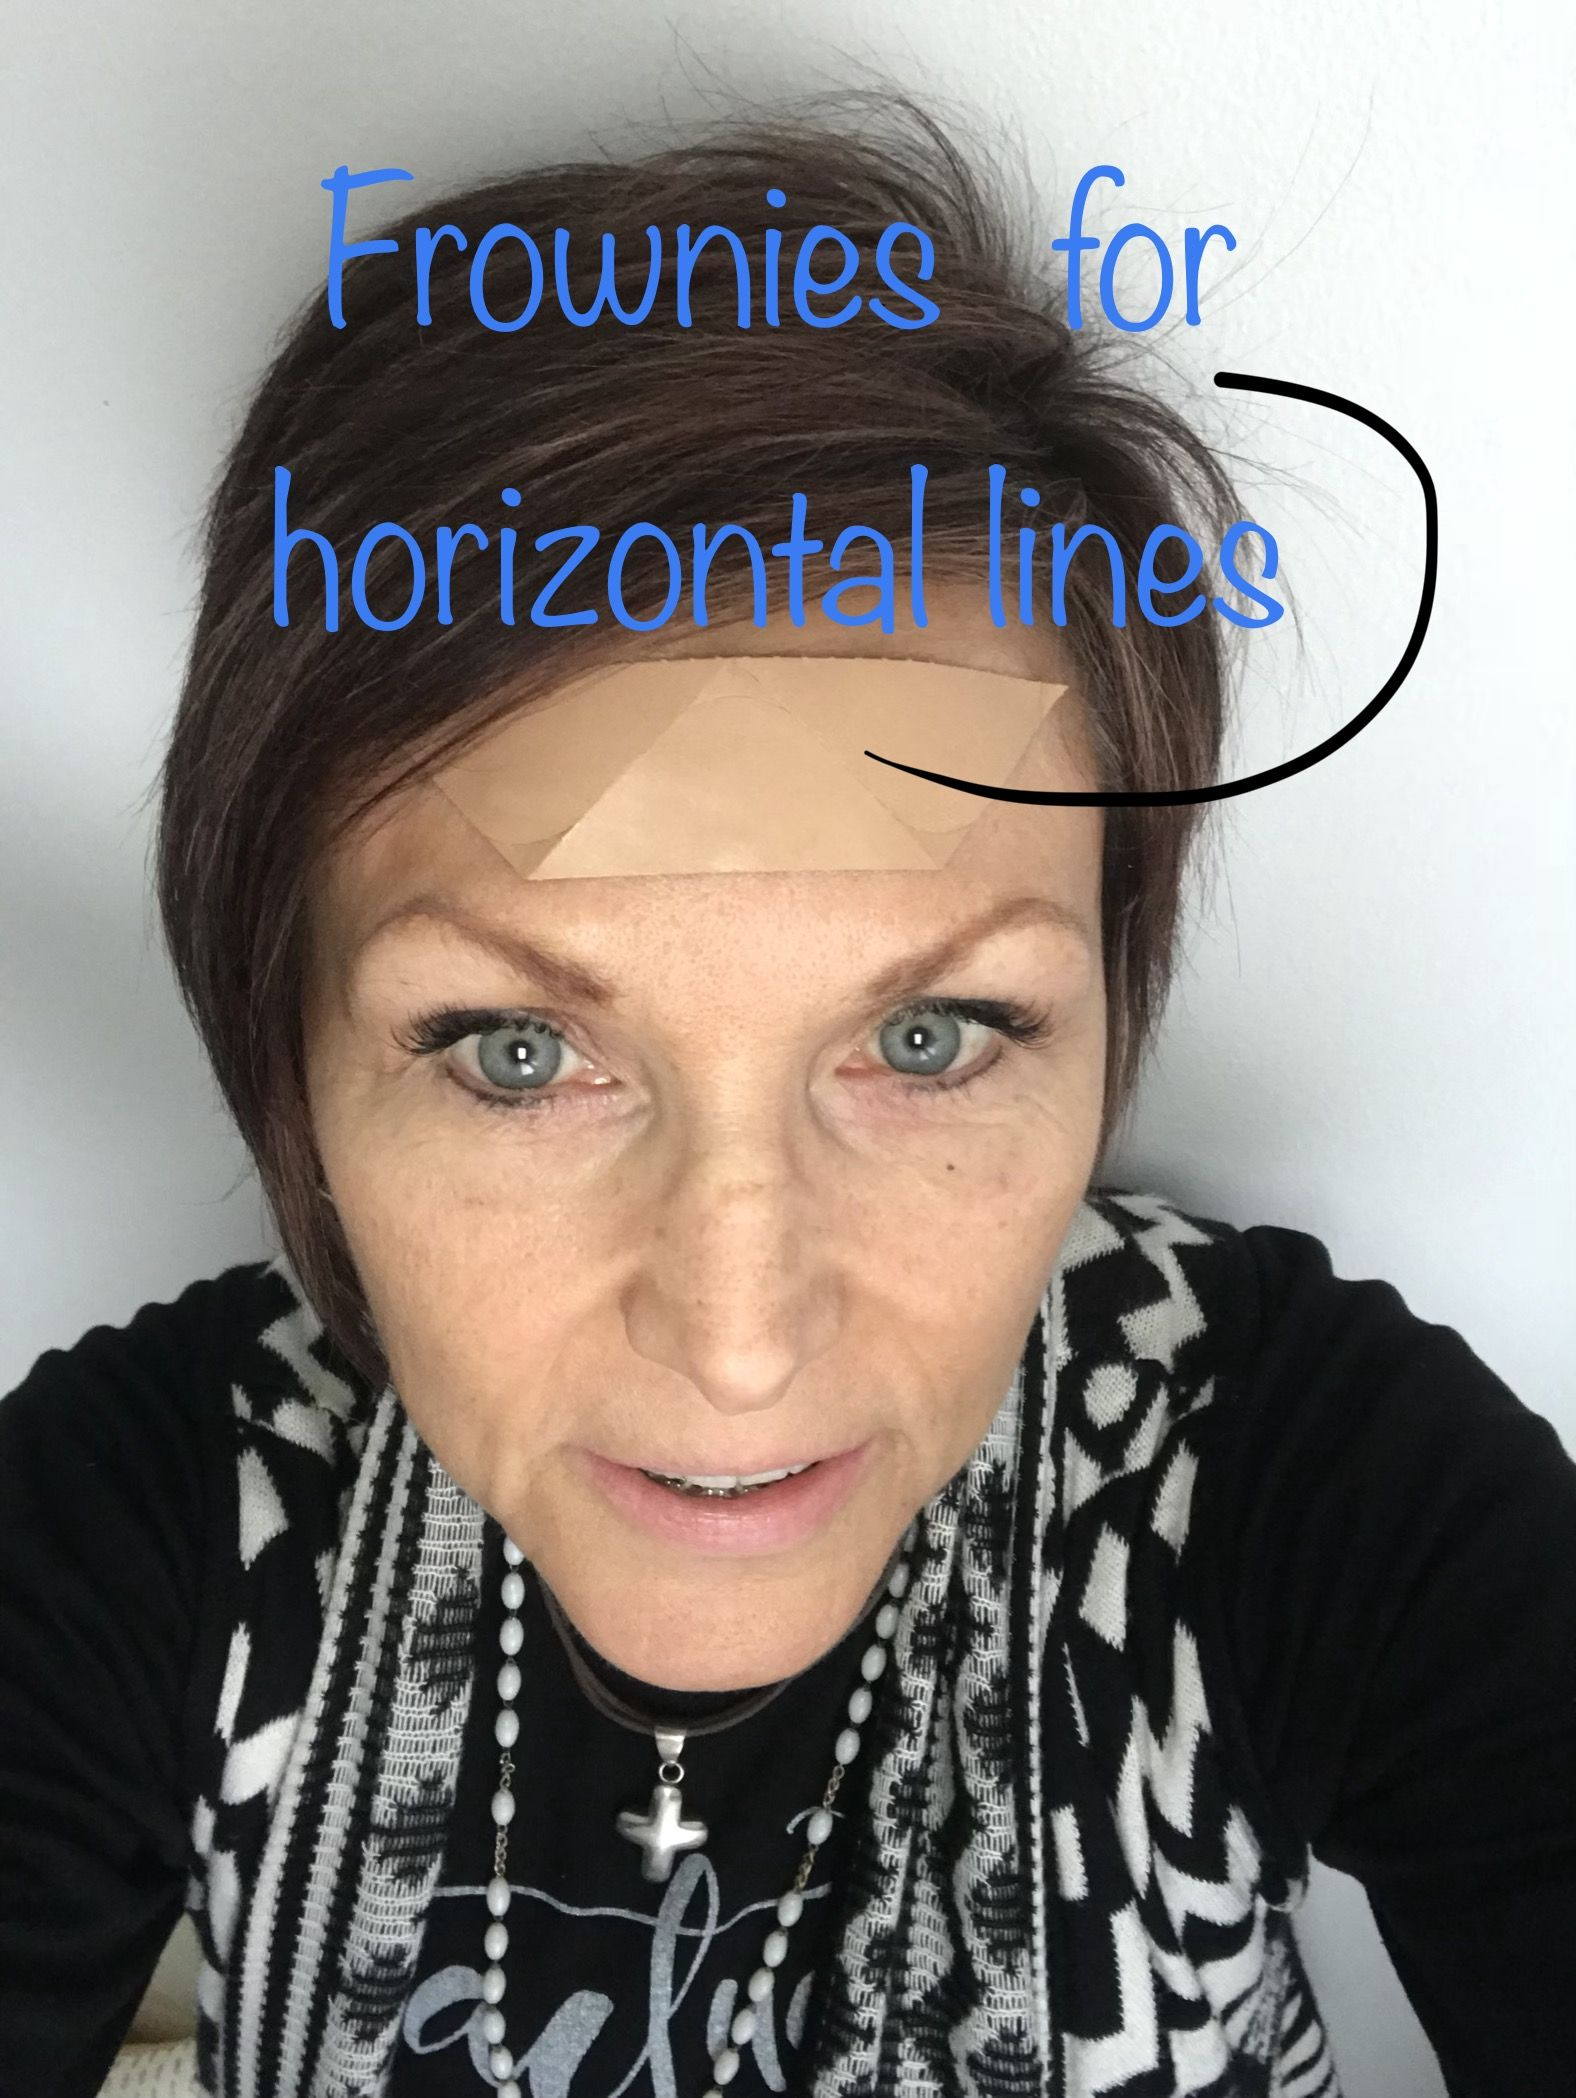 For horizontal wrinkles cover the width of the wrinkles